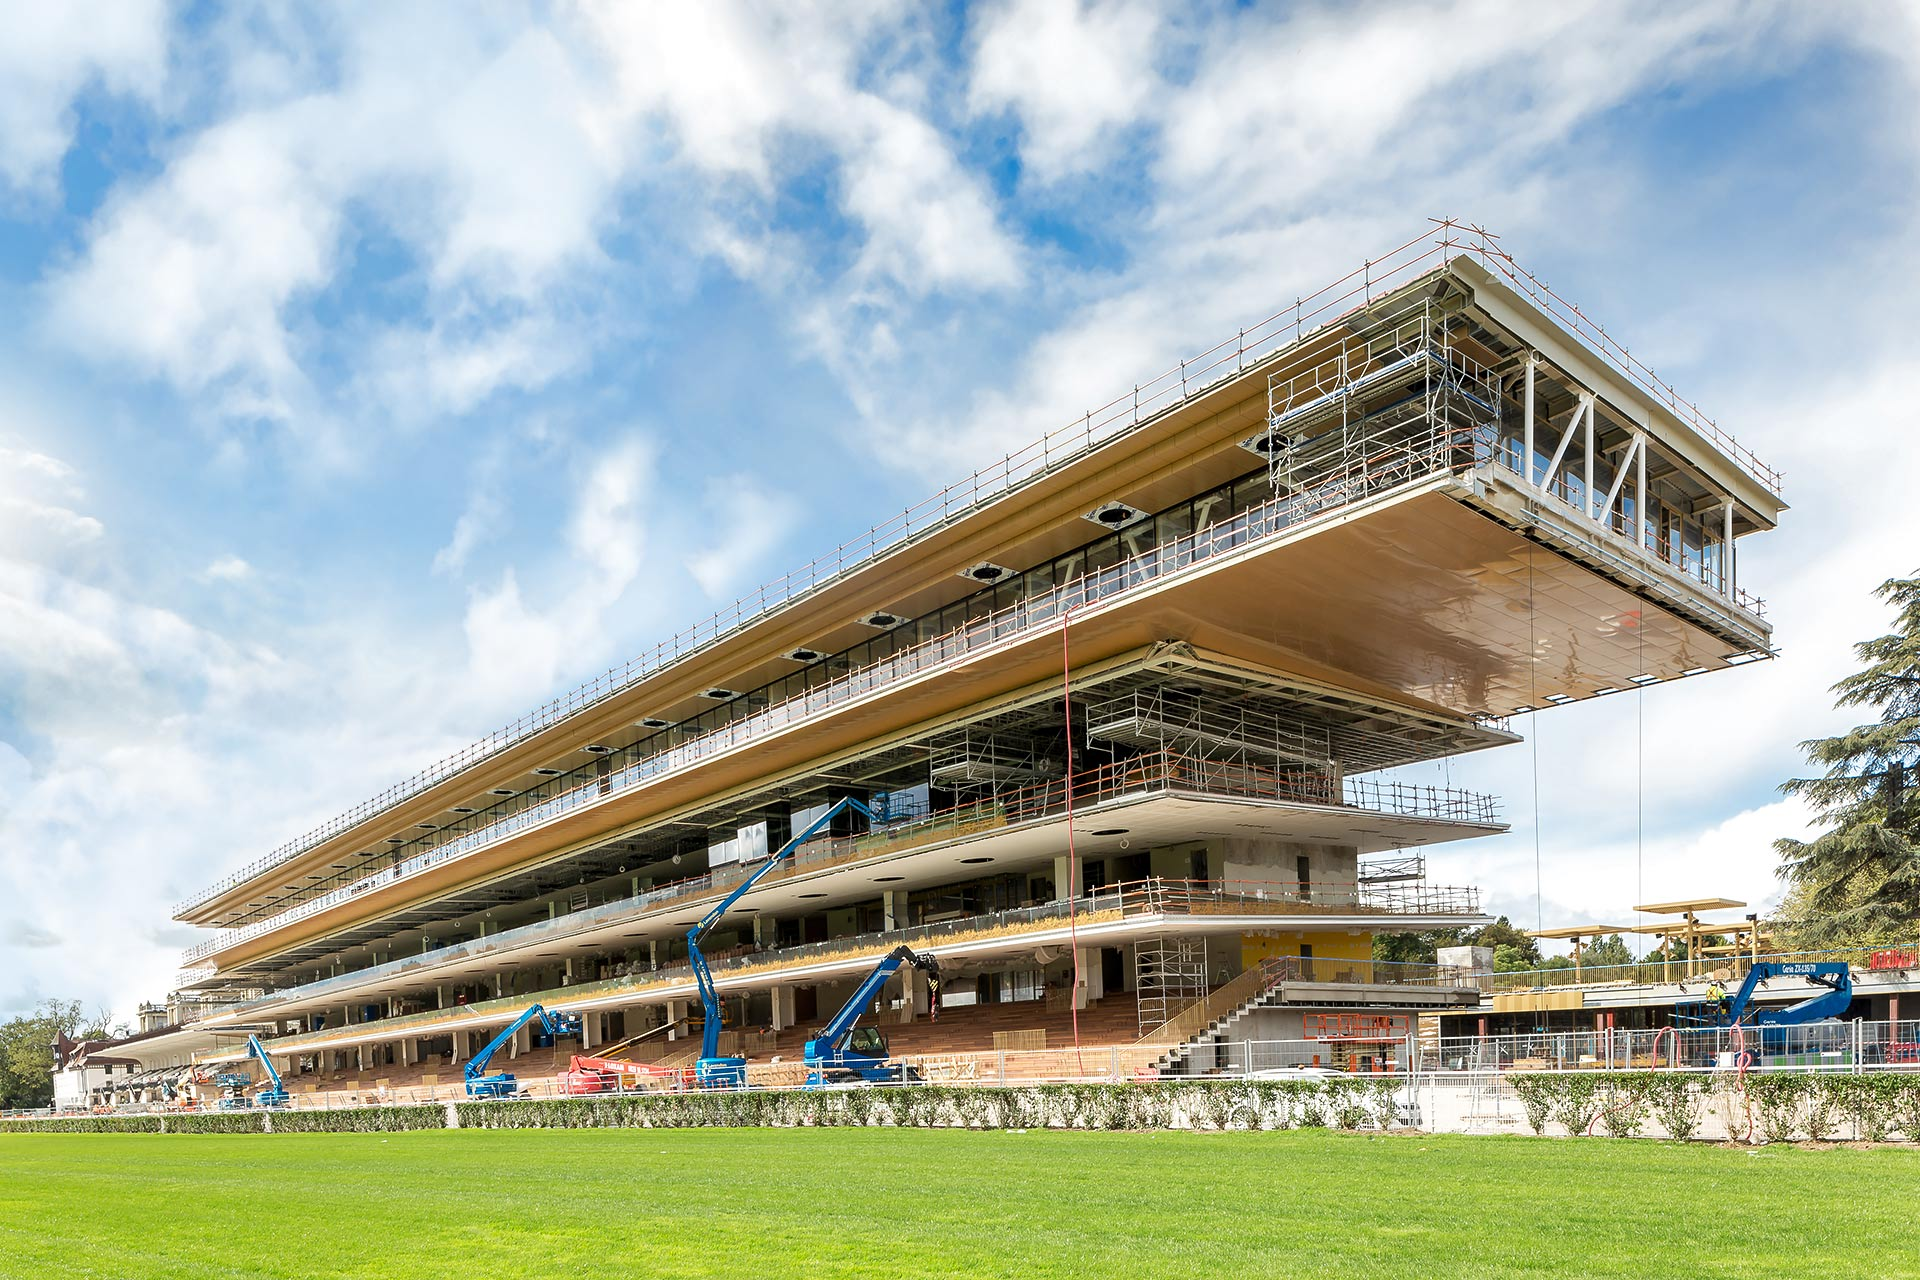 Longchamp racecourse : between history and modernity